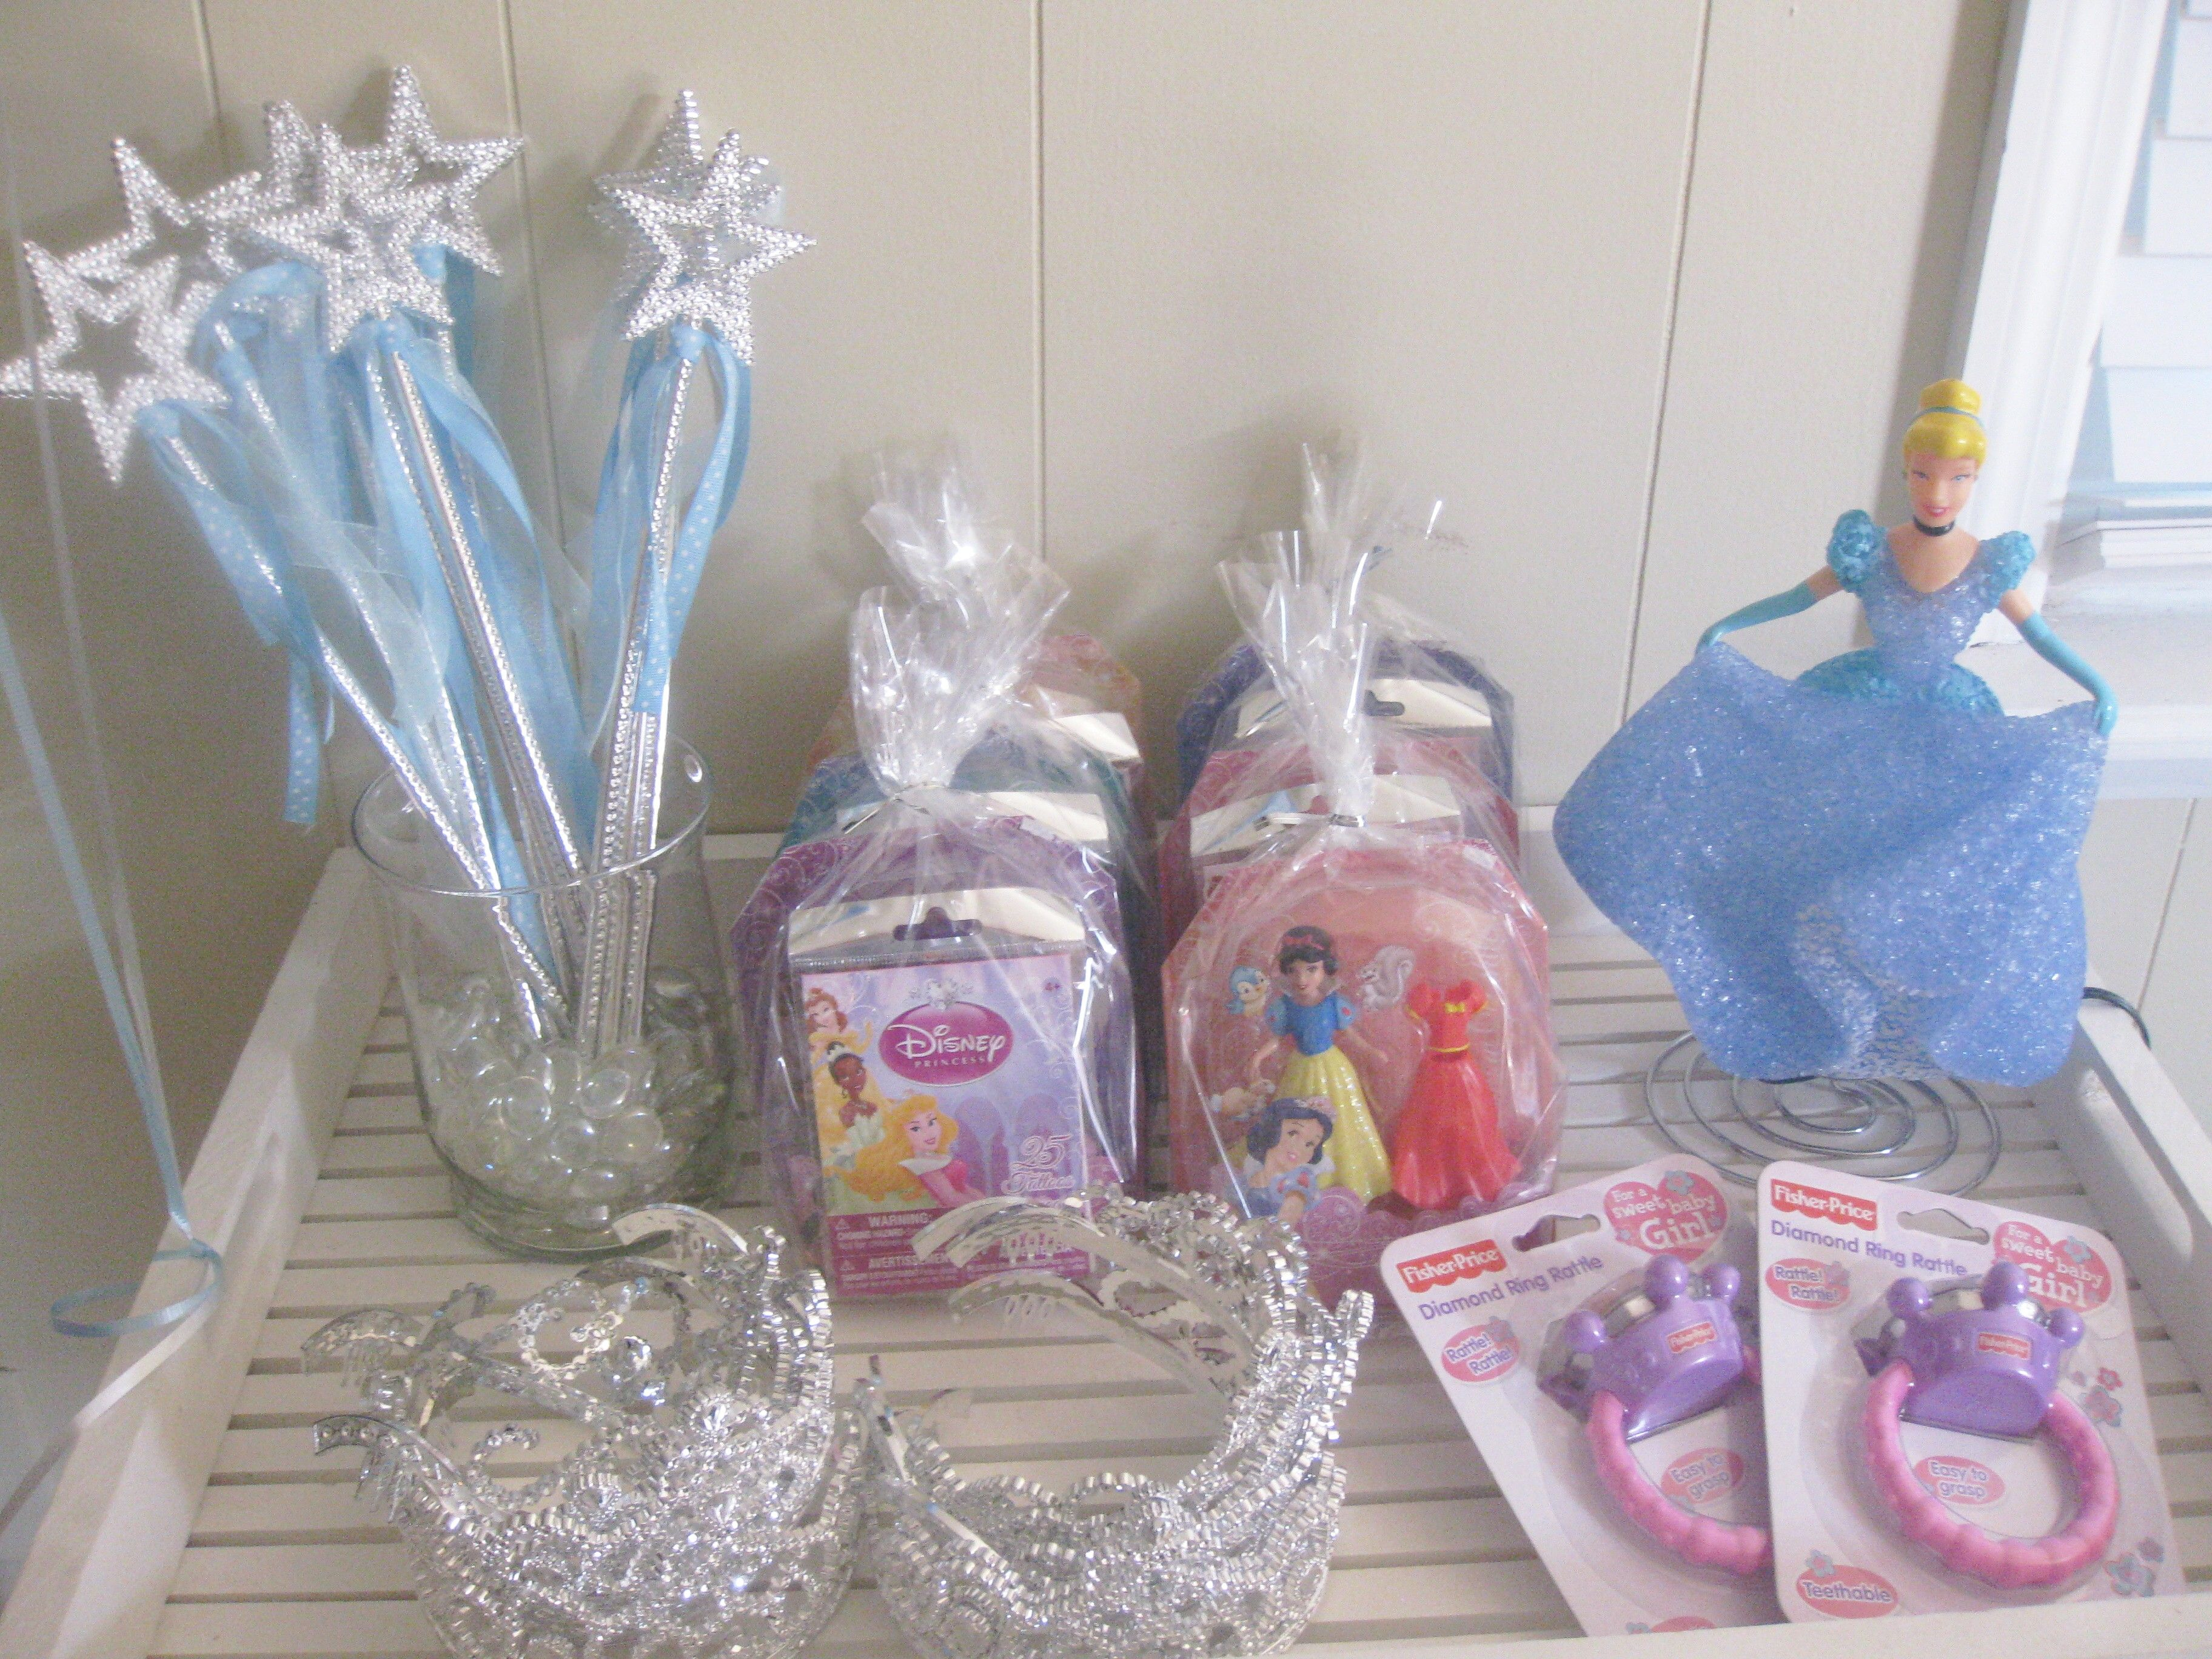 Cinderella Favor Table With Wands Tiaras Goody Bags And Teething Rings For The Tiny Princesses